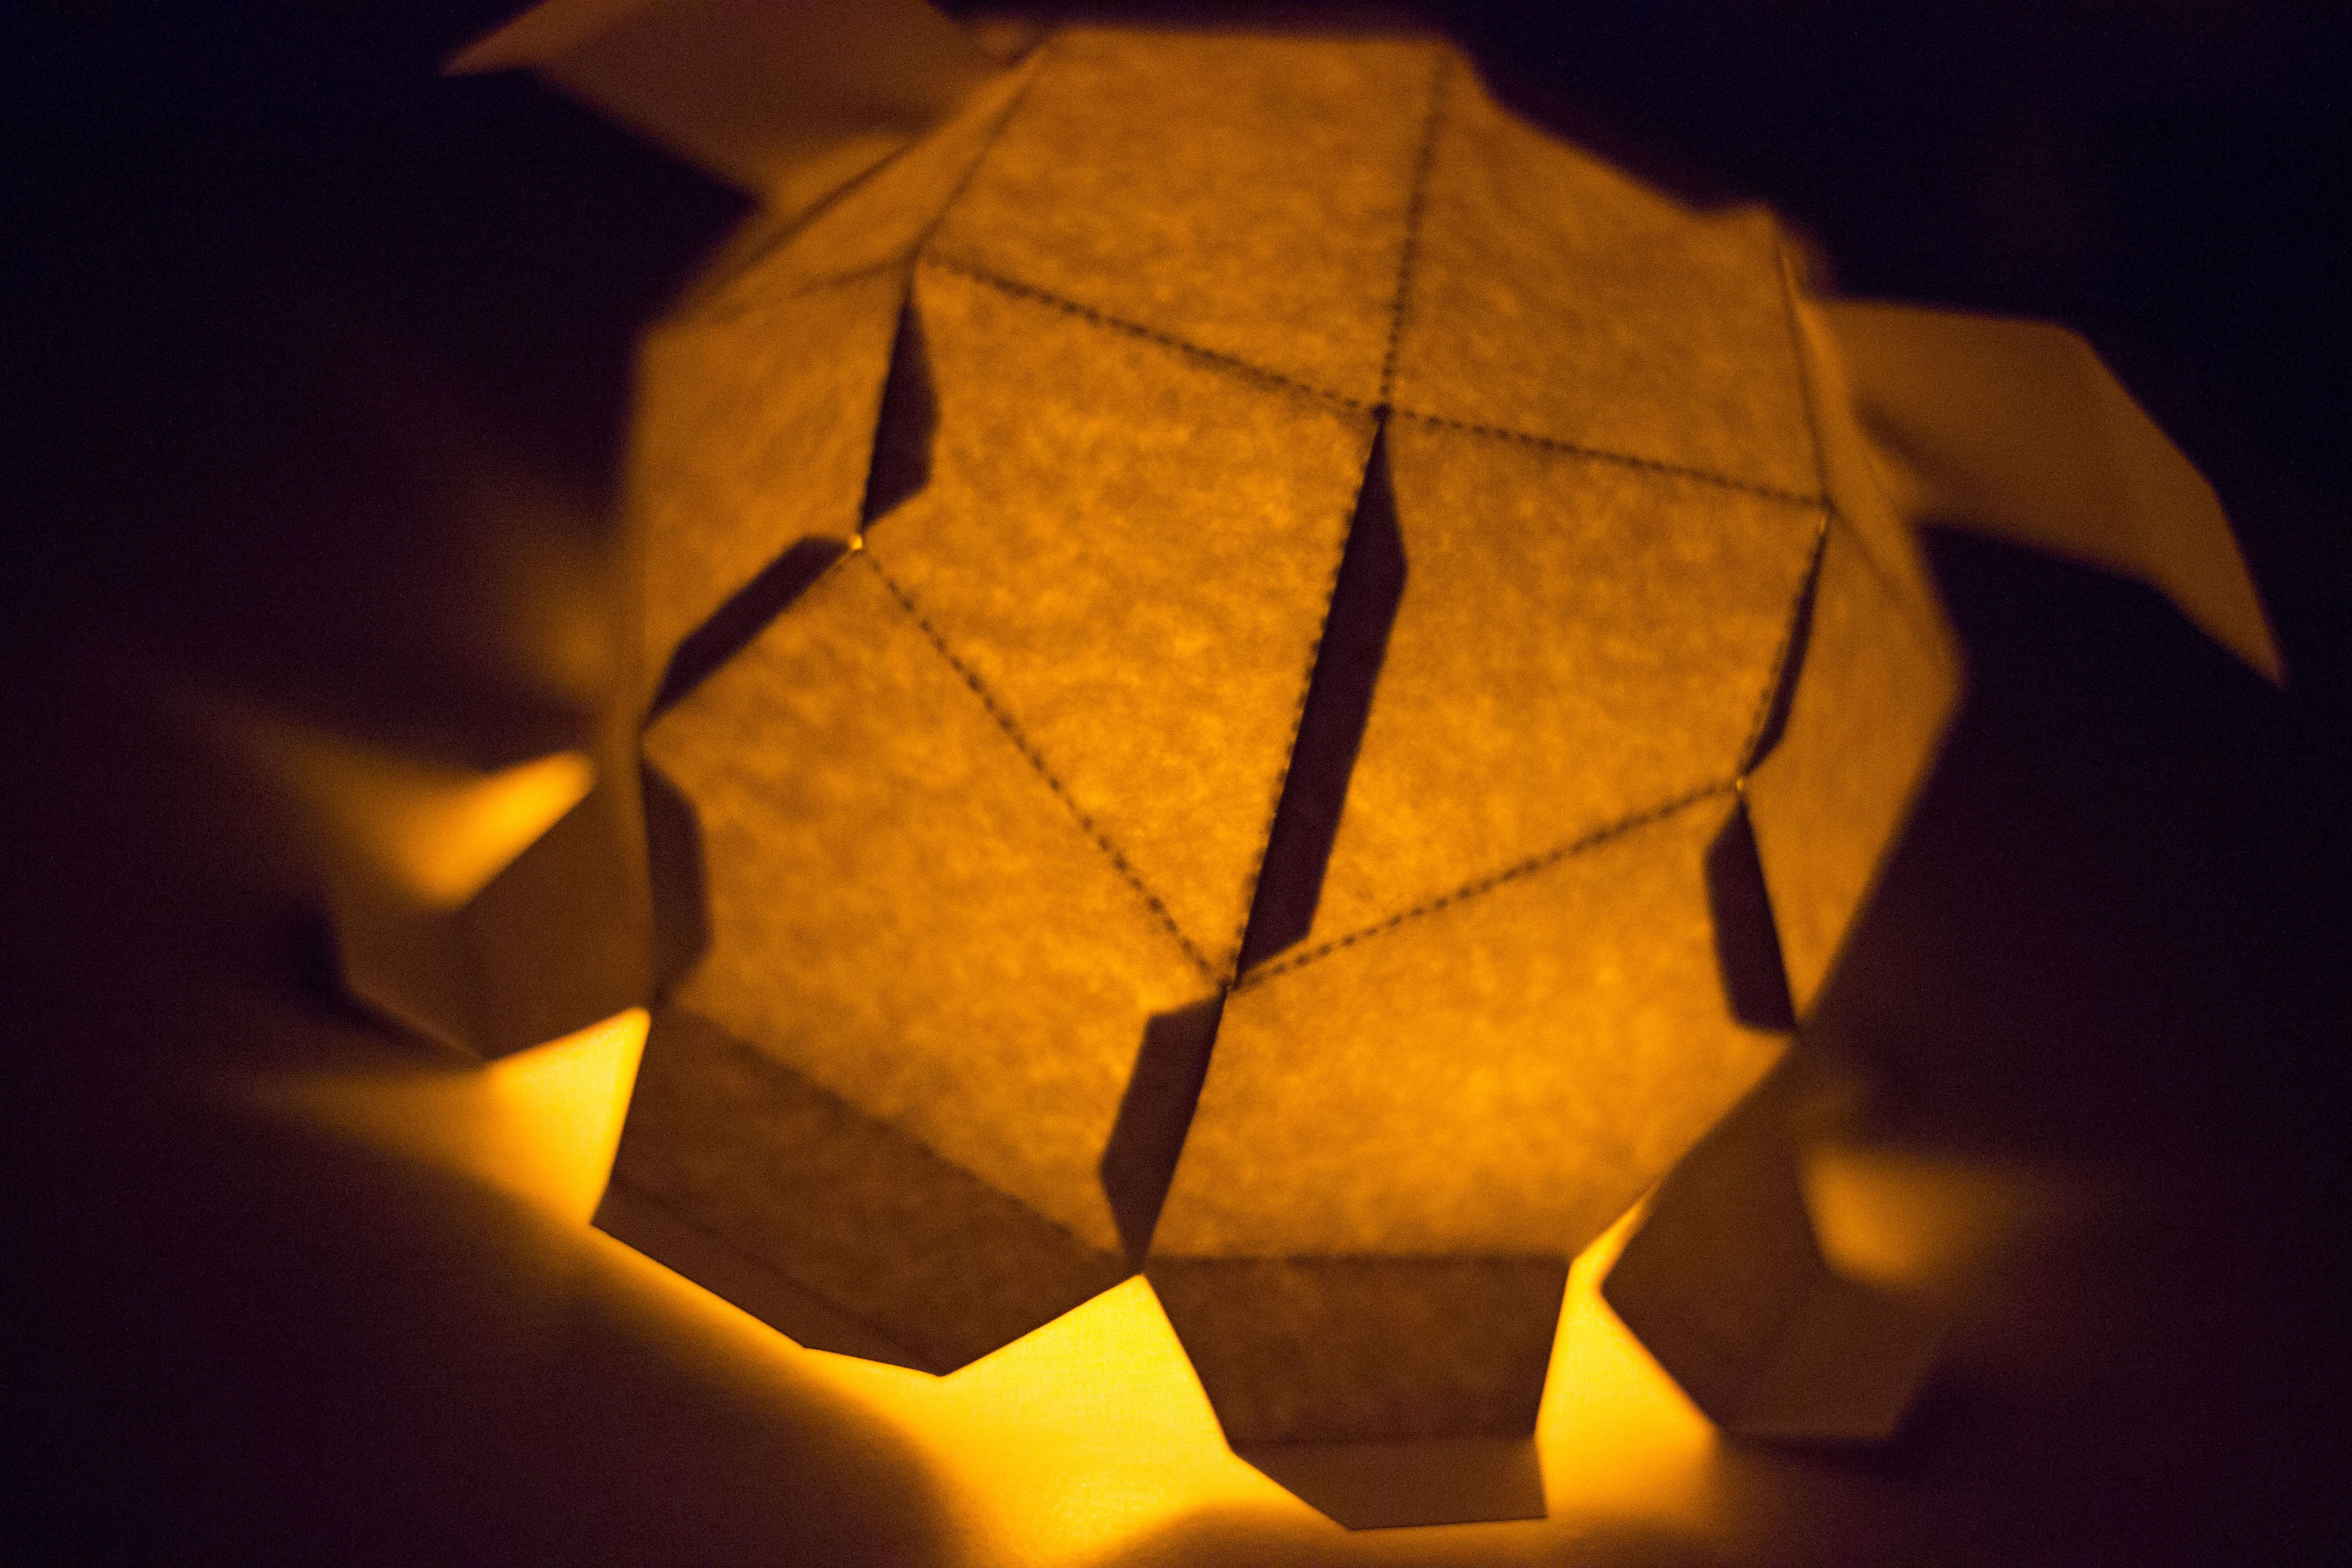 Diy Paper Toy Luminary Inspired By The Adorable Dumbo Octopus